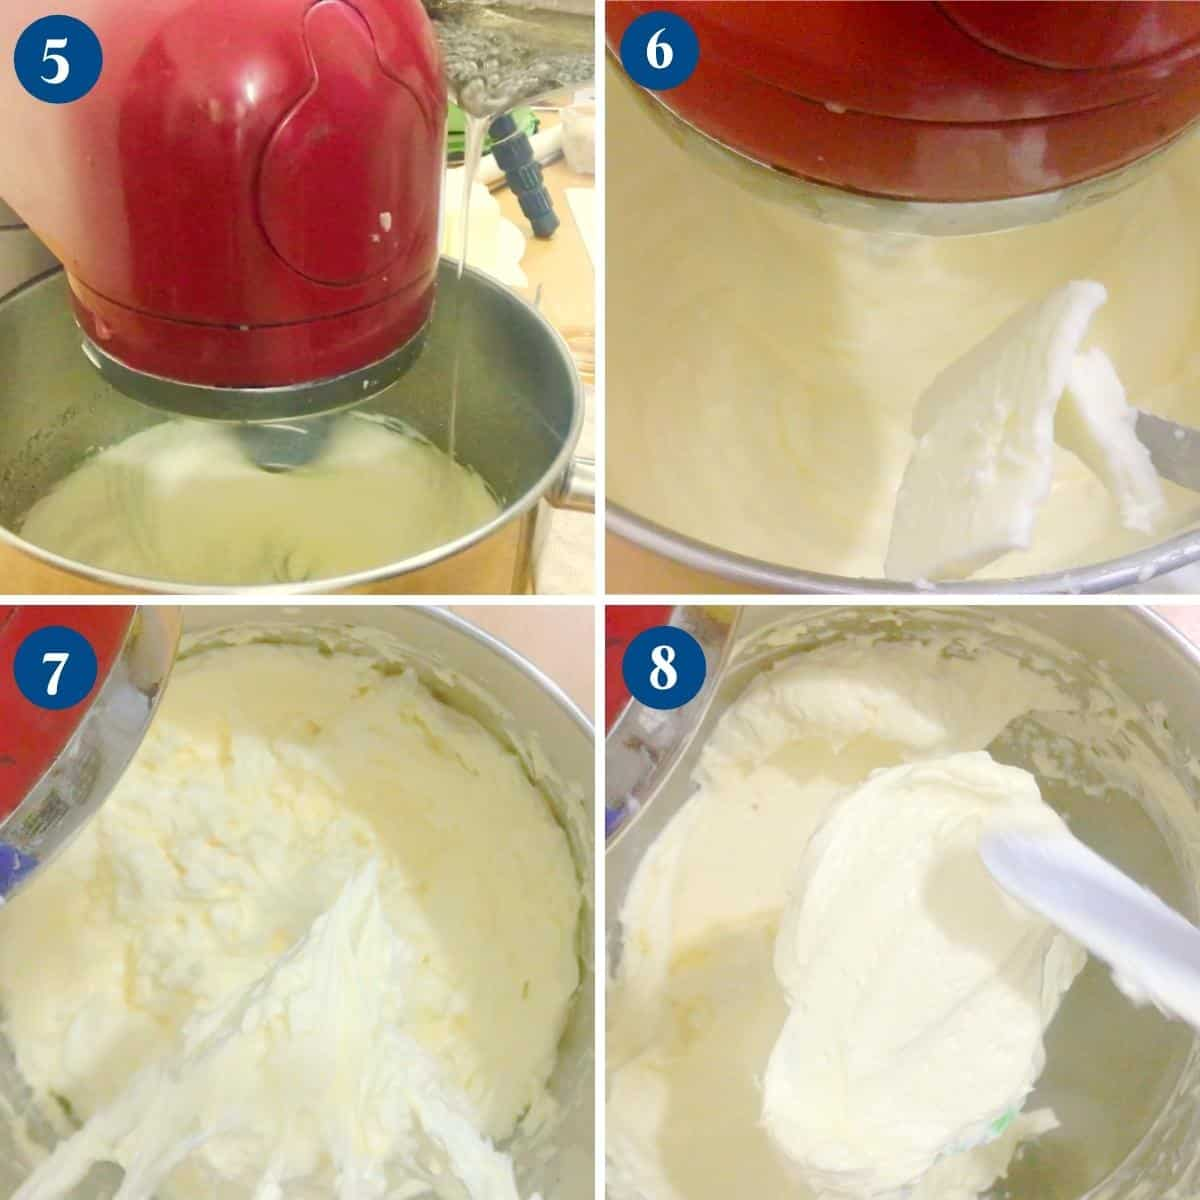 Progress pictures collage whipping egg yolks with sugar syrup.